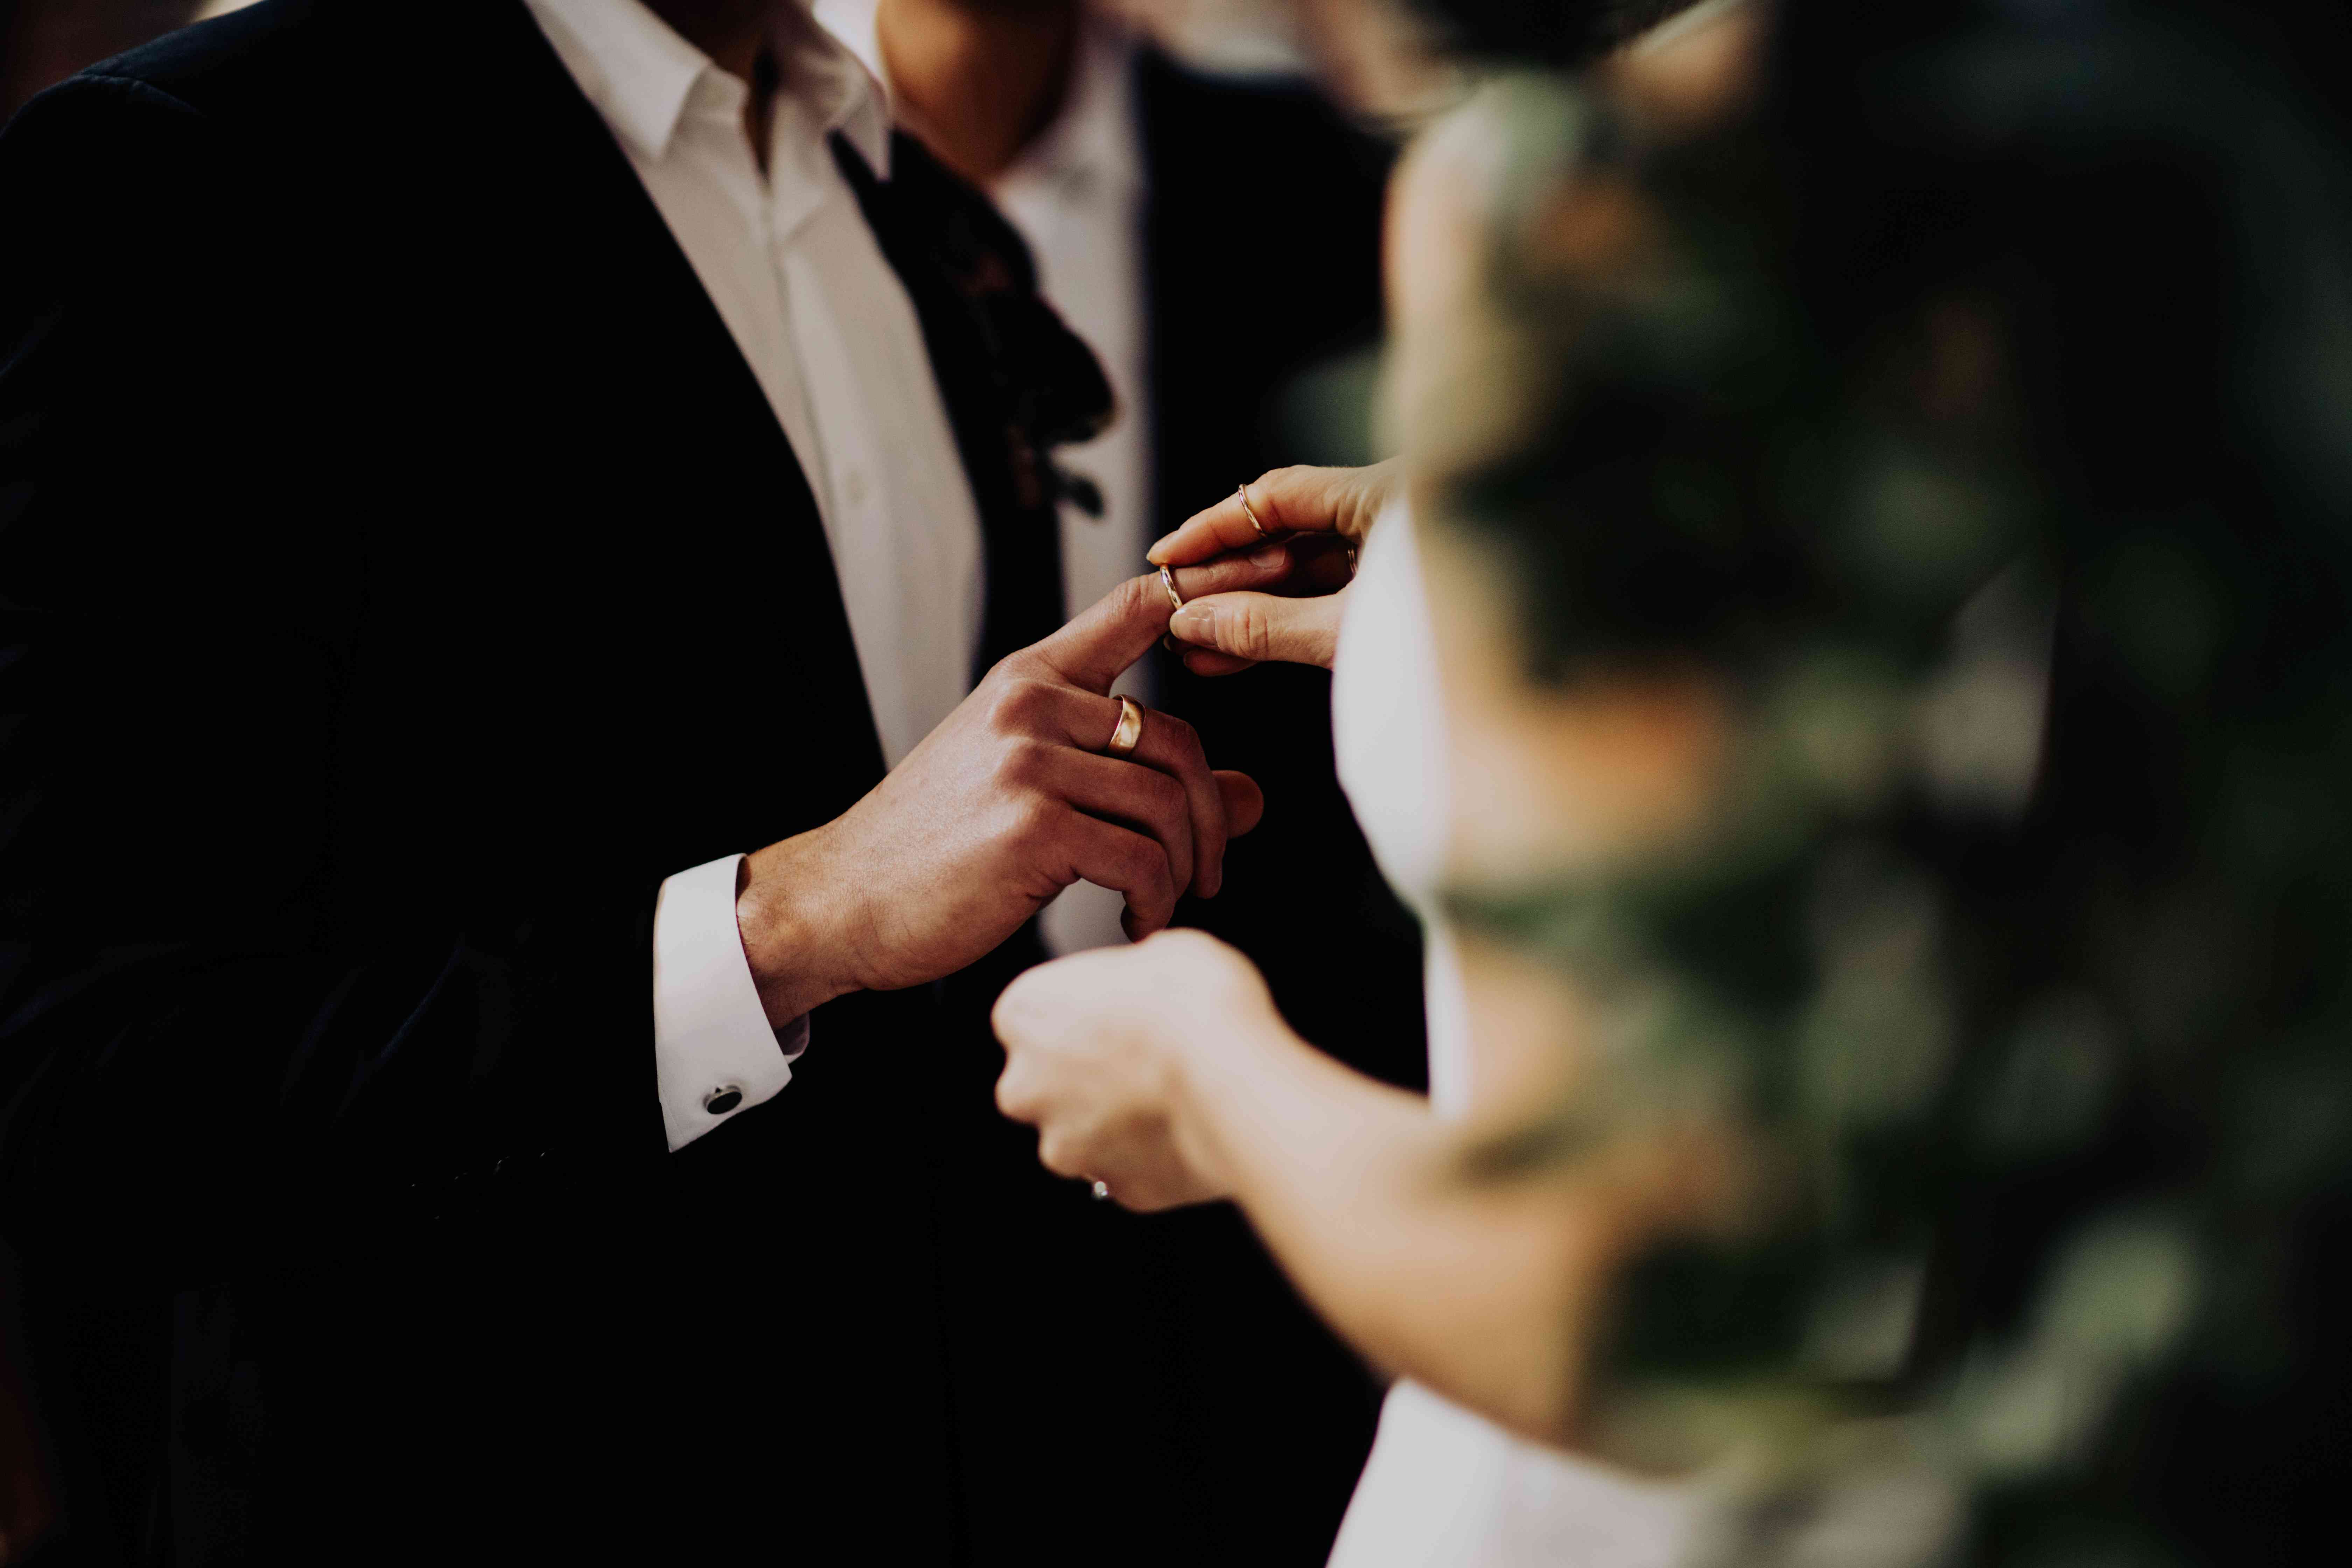 <p>exchanging rings</p><br><br>